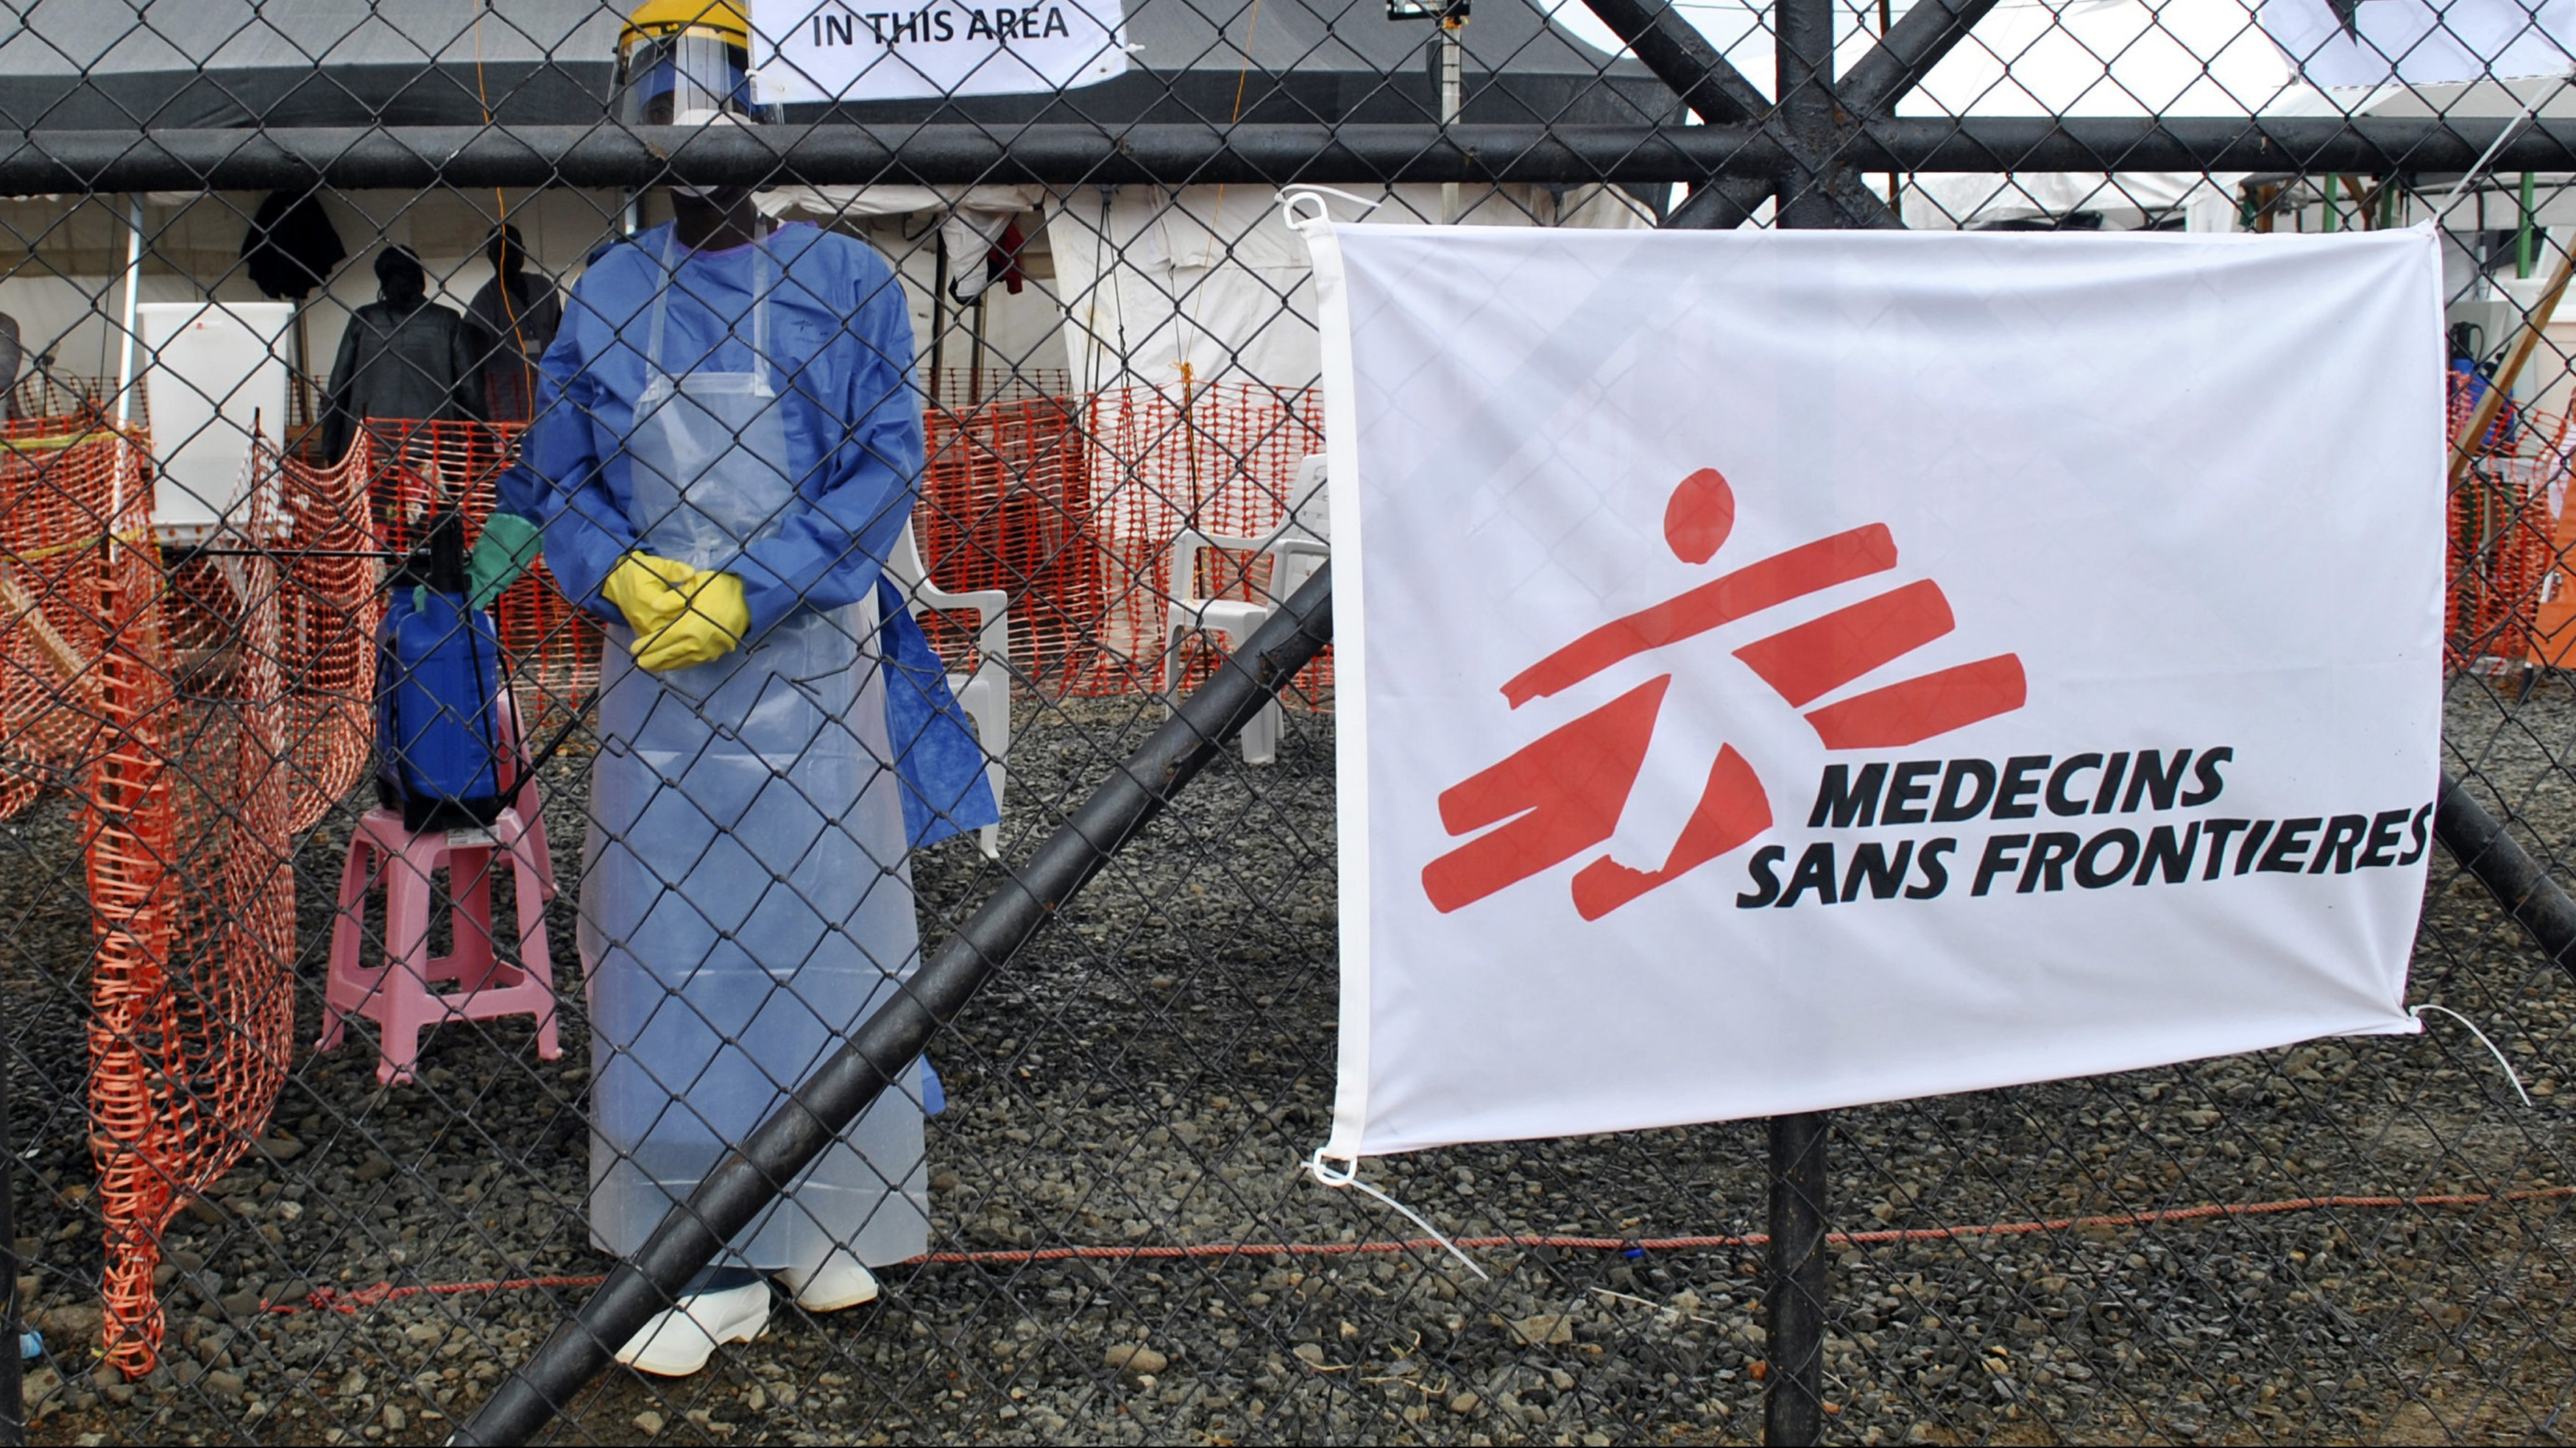 Doctors Without Borders goes where no one else will and works with those who can't get help anywhere else.